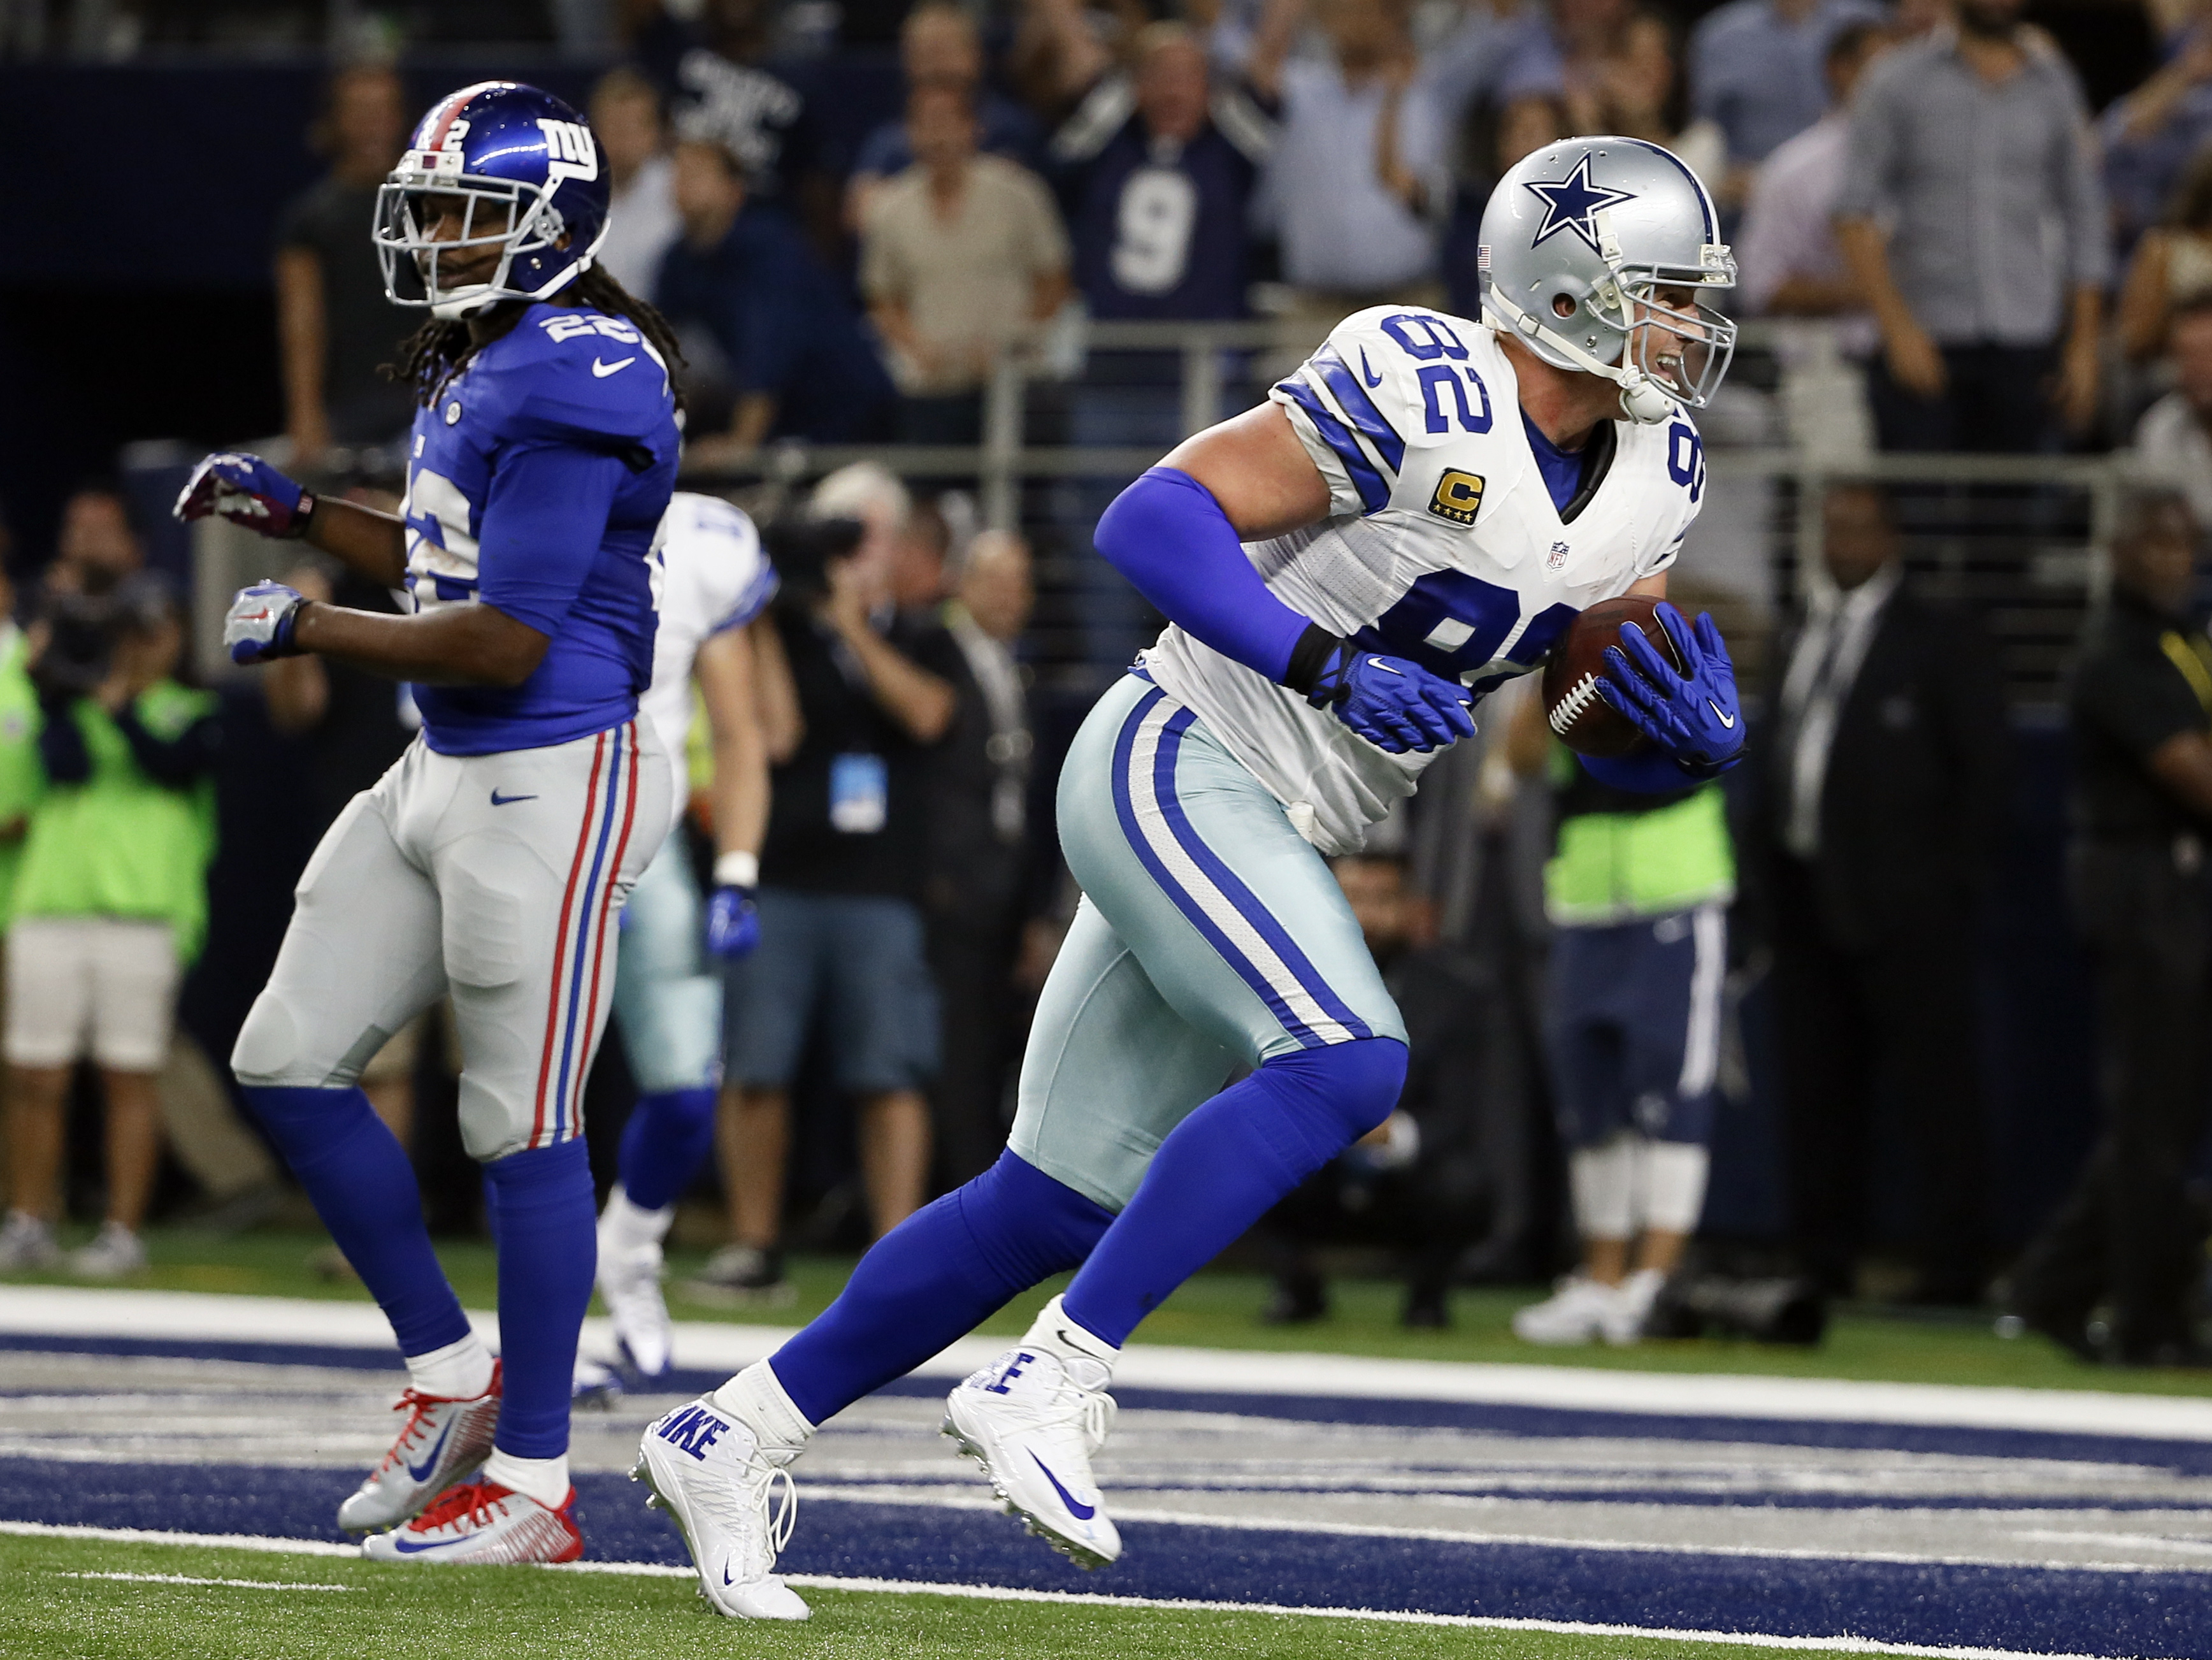 Dallas Cowboys tight end Jason Witten (82) gets past New York Giants safety Brandon Meriweather for a touchdown (22)during the second half of an NFL football game Sunday, Sept. 13, 2015, in Arlington, Texas. (AP Photo/Tony Gutierrez)